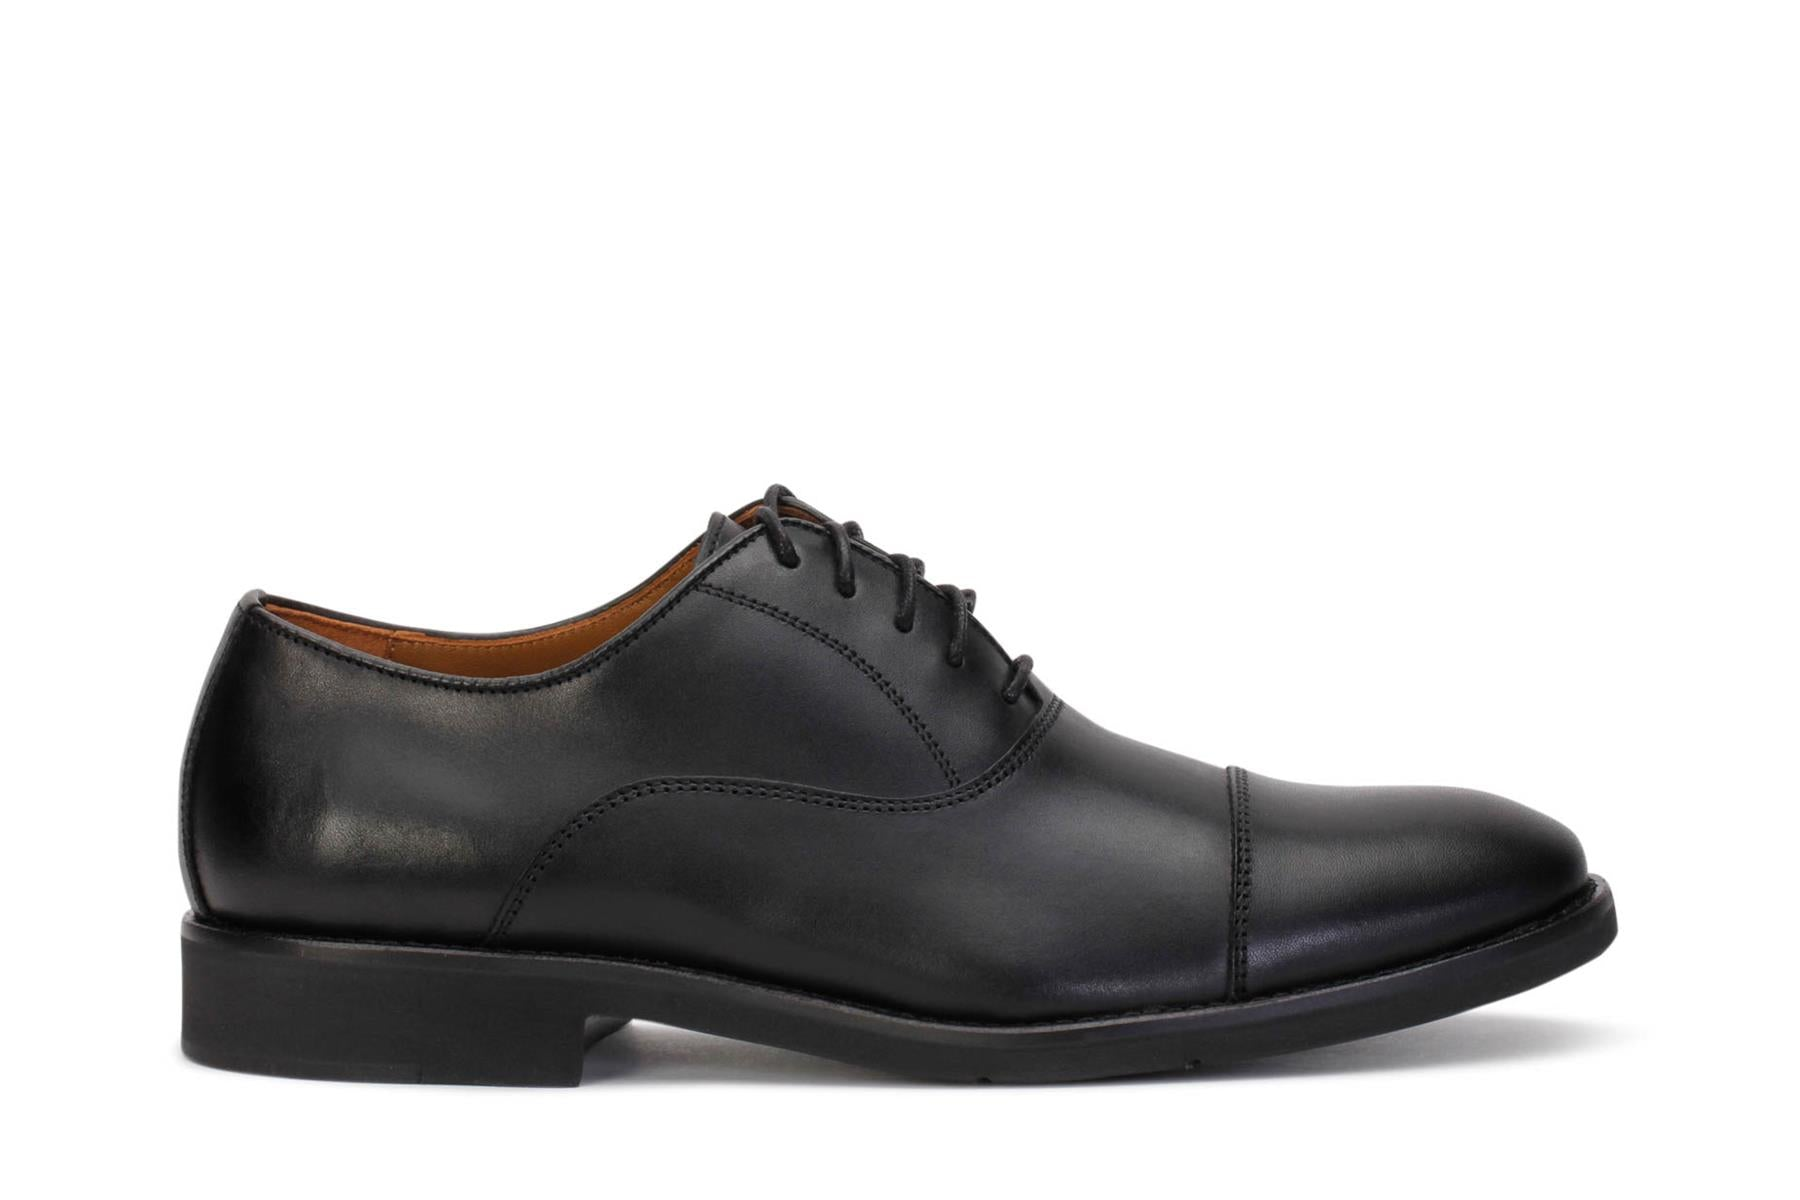 johnston-murphy-mens-oxford-lace-up-clarson-shoes-black-leather-20-3915-main